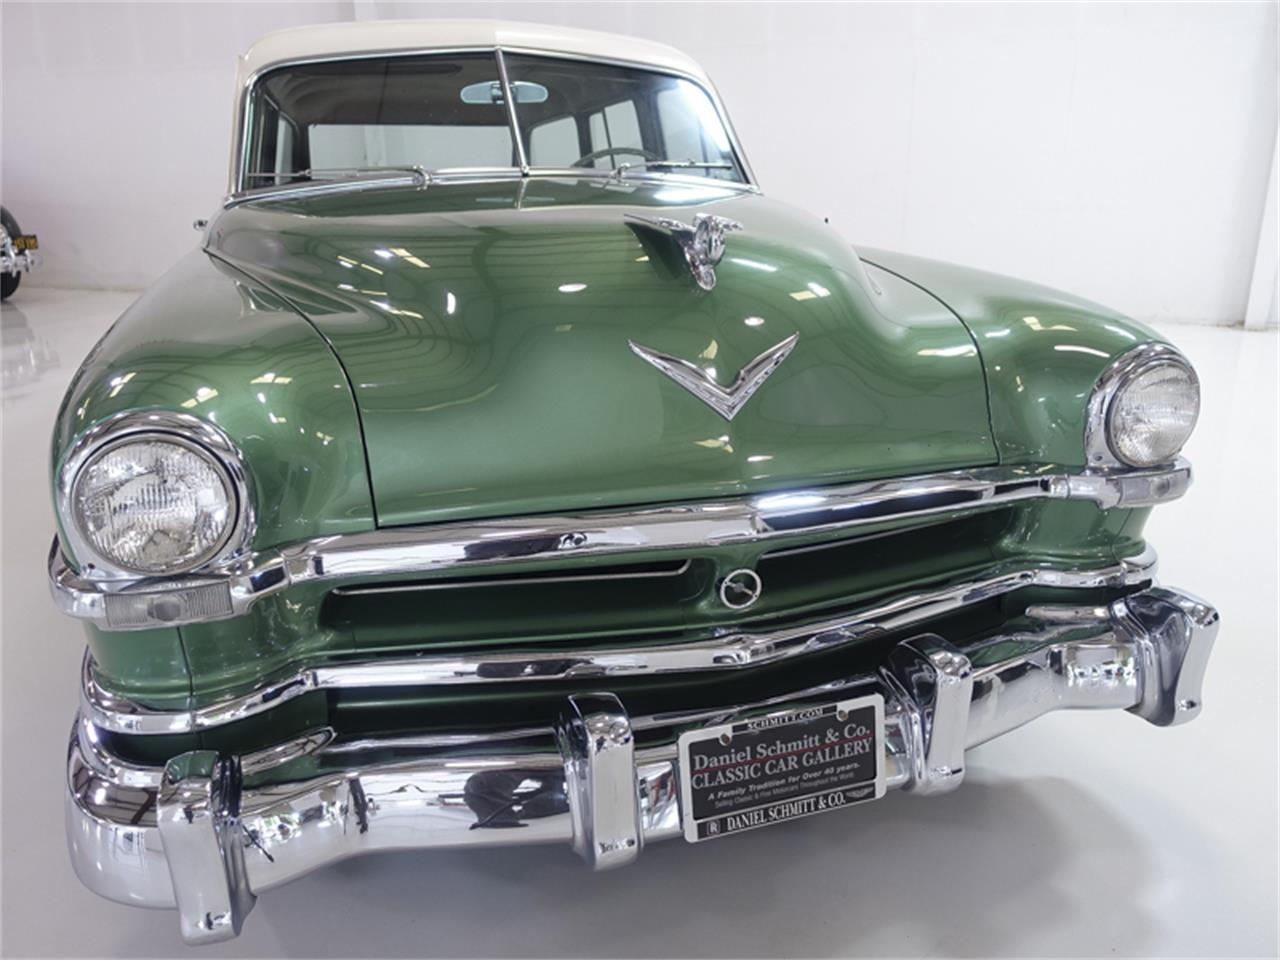 1952 Chrysler Saratoga for sale in St. Louis, MO – photo 5